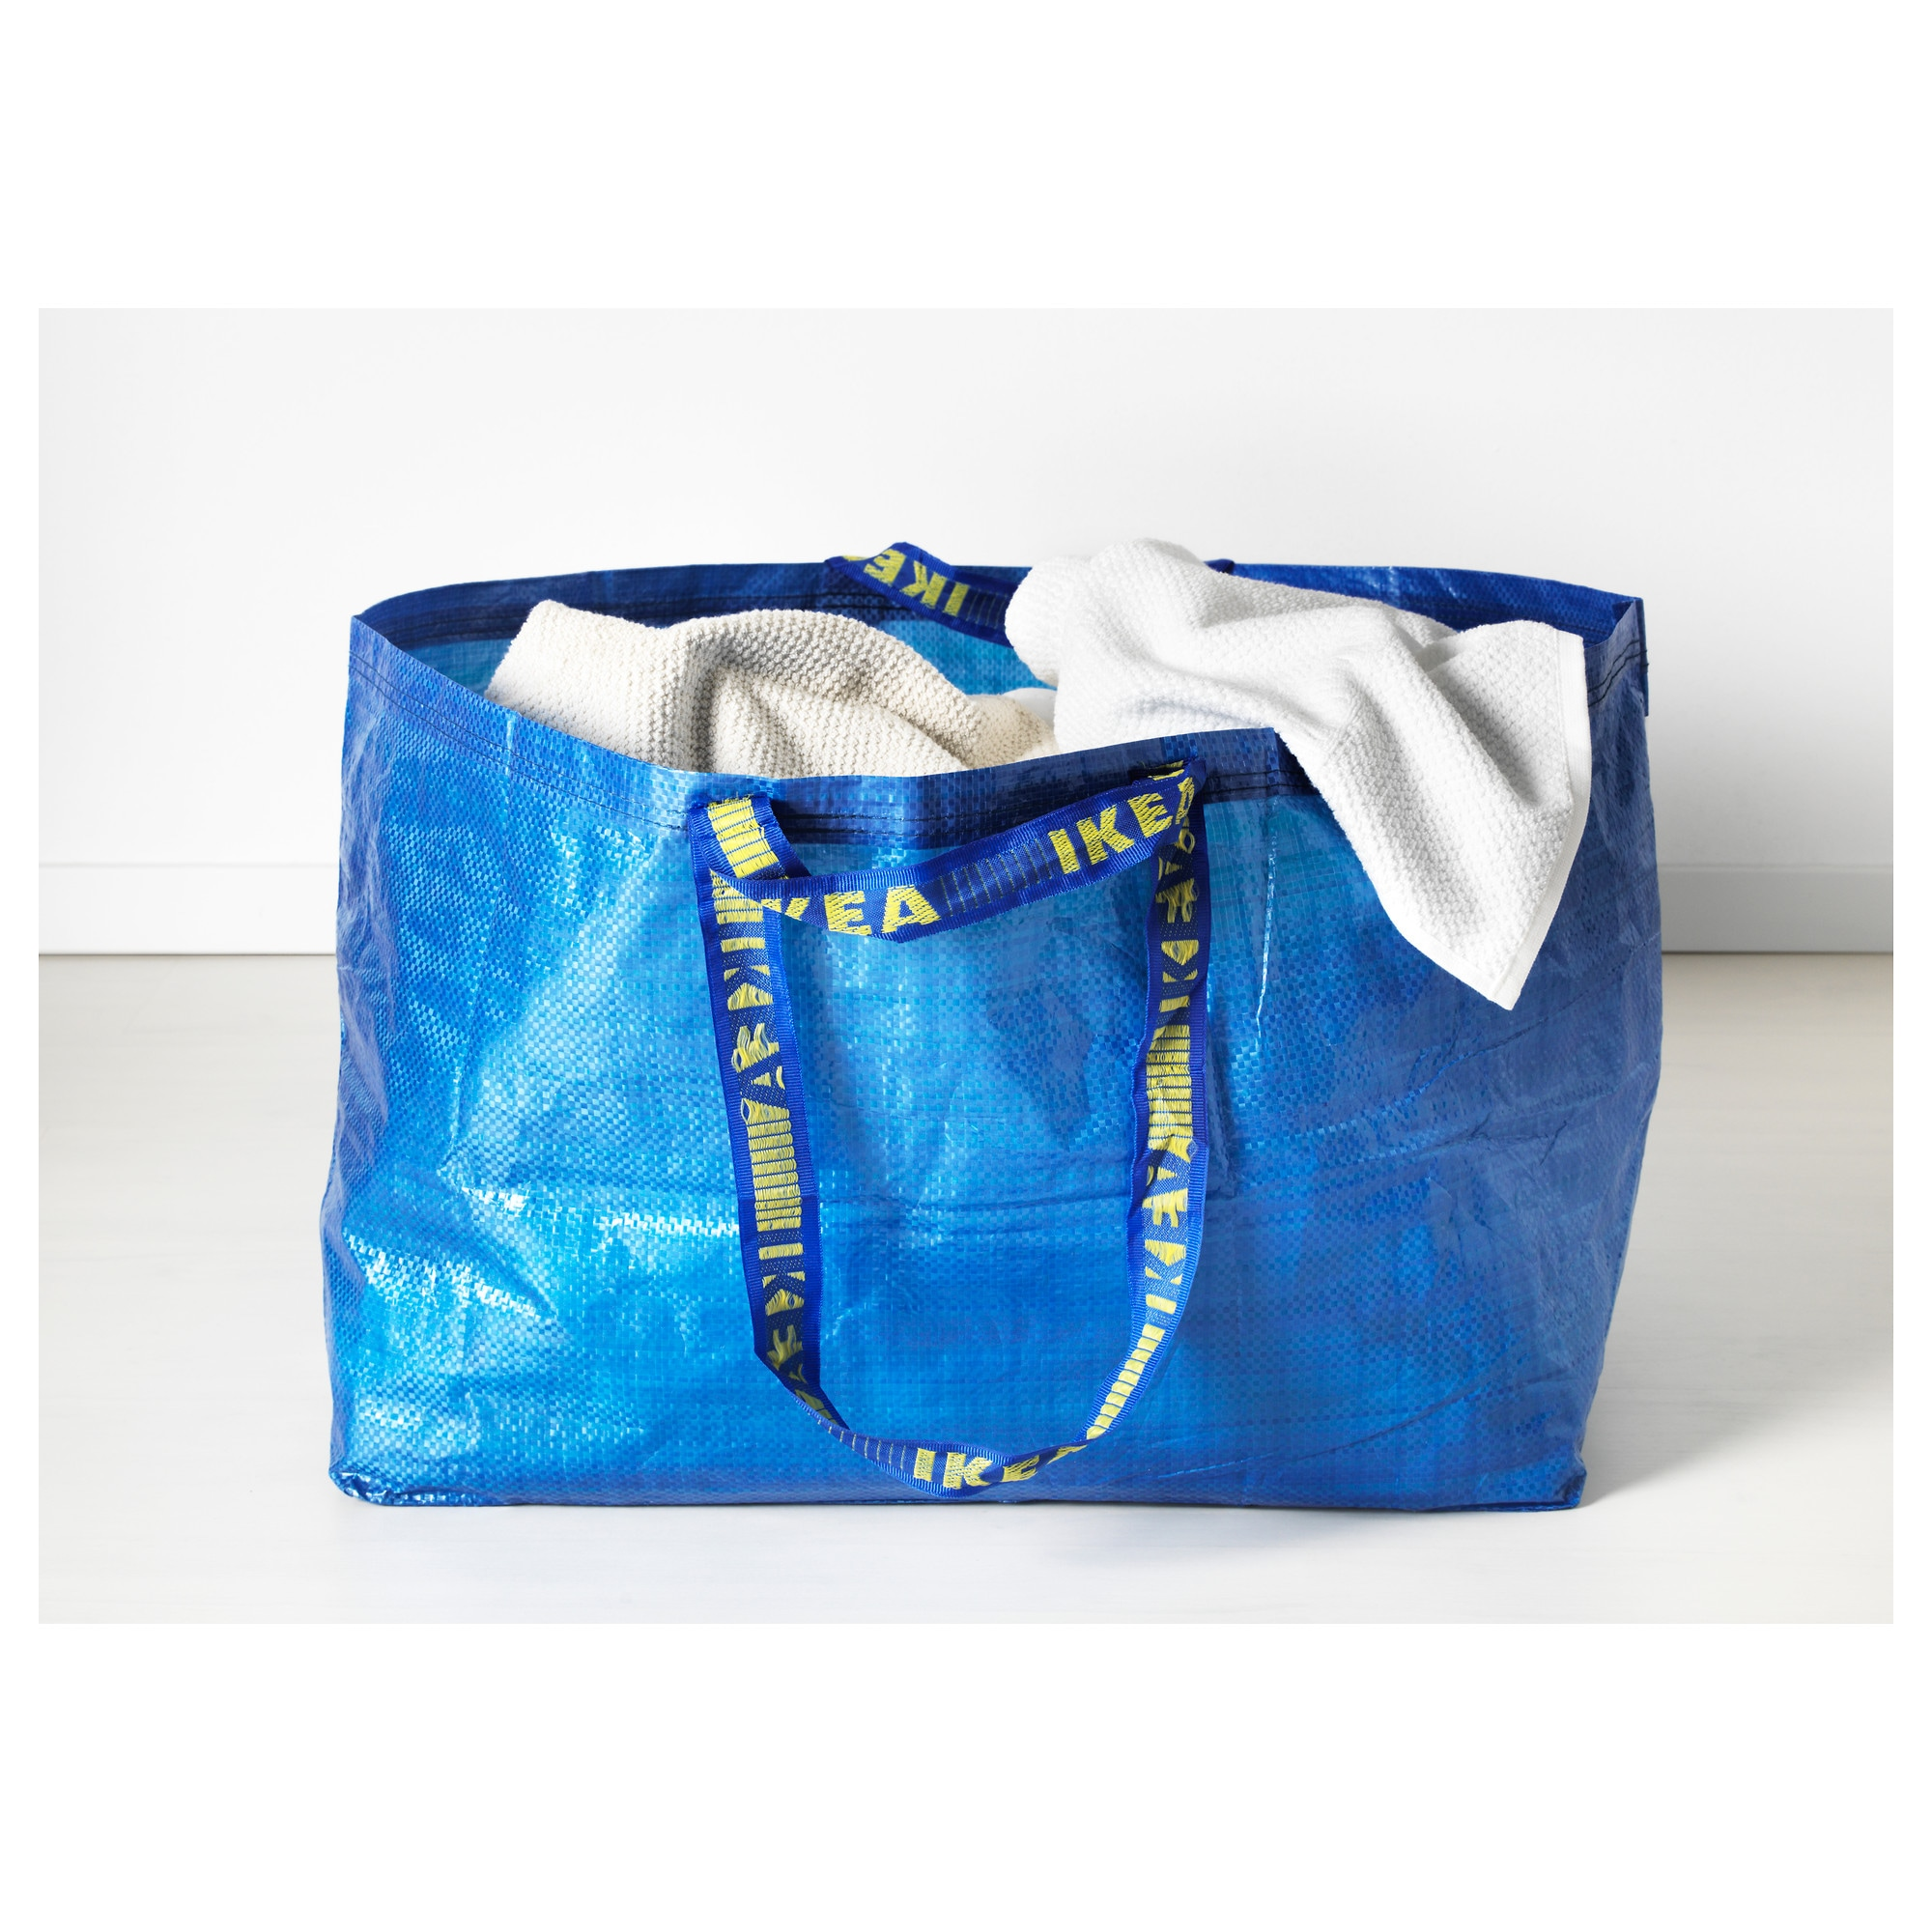 In Praise of IKEA's FRAKTA Bag | Apartment Therapy